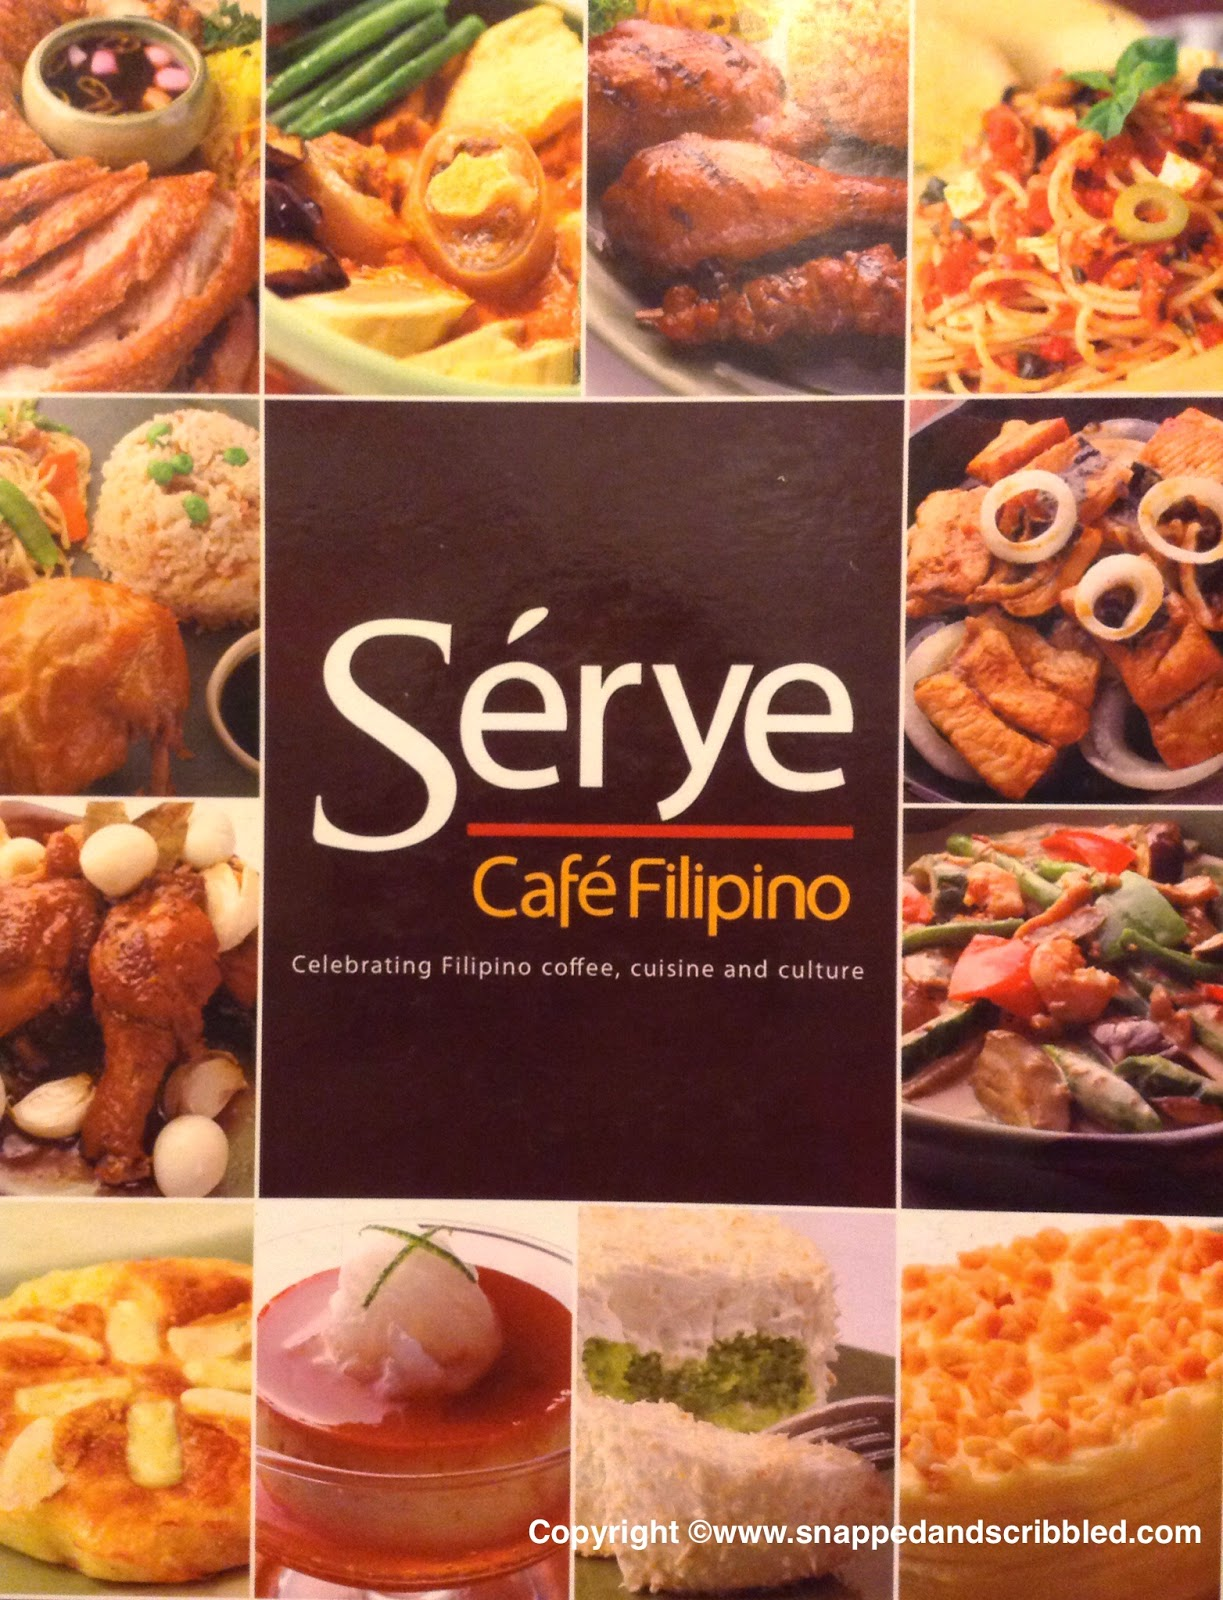 Where To Eat In Eastwood City: Serye Cafe Filipino